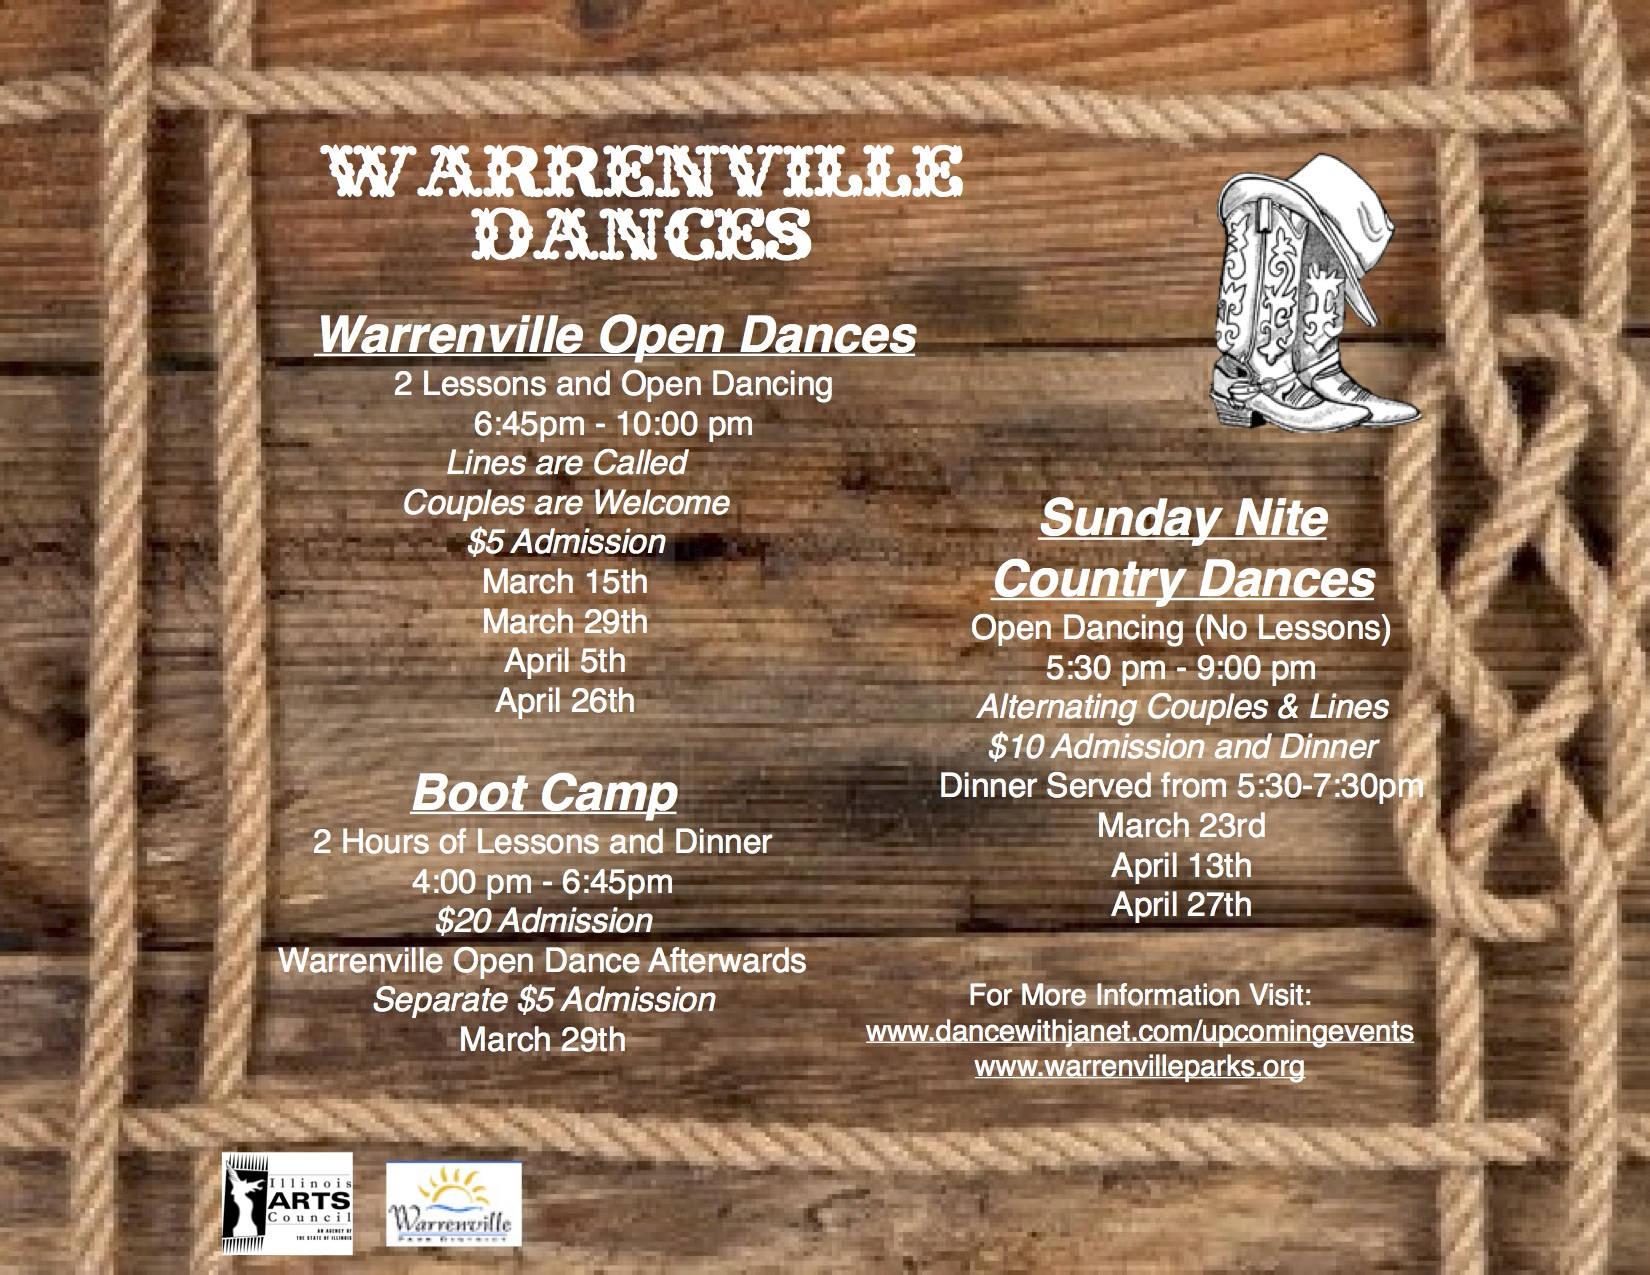 Couples5 dance instruction with a personal touch line dancing - Warrenville_dances_flyer